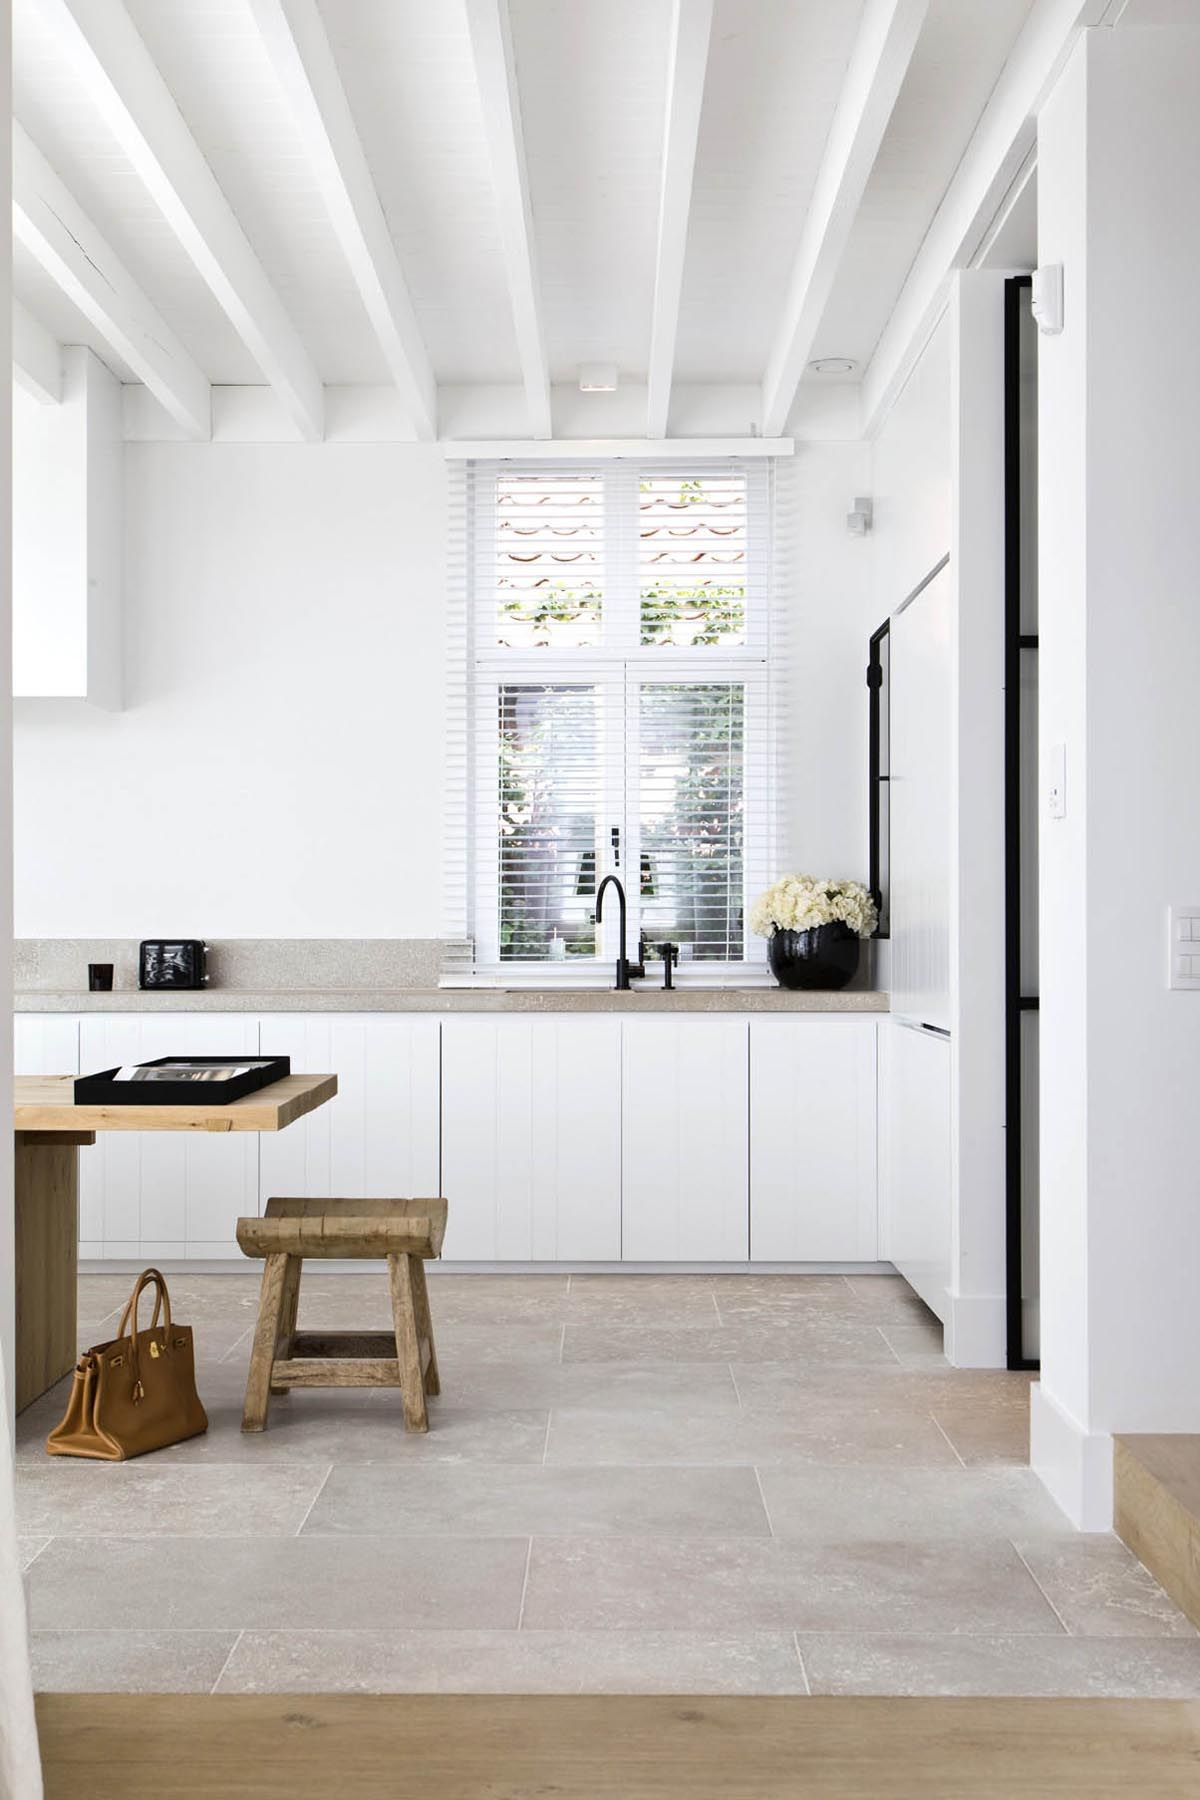 White Kitchen With Island: 17 White Kitchen Designs Inspirations